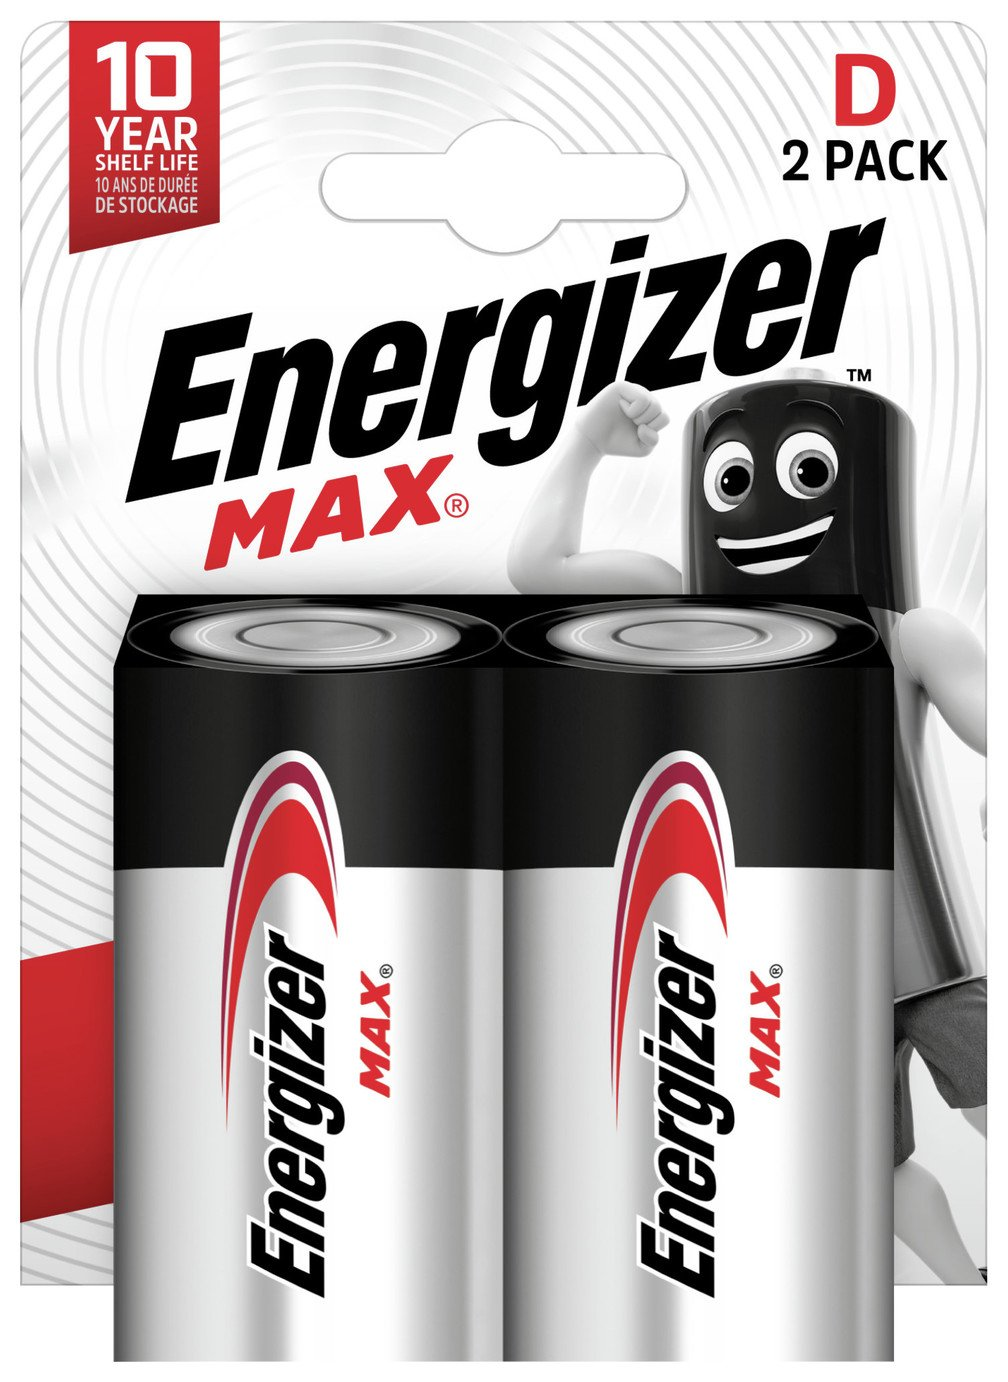 Energizer Max D Batteries - Pack of 2